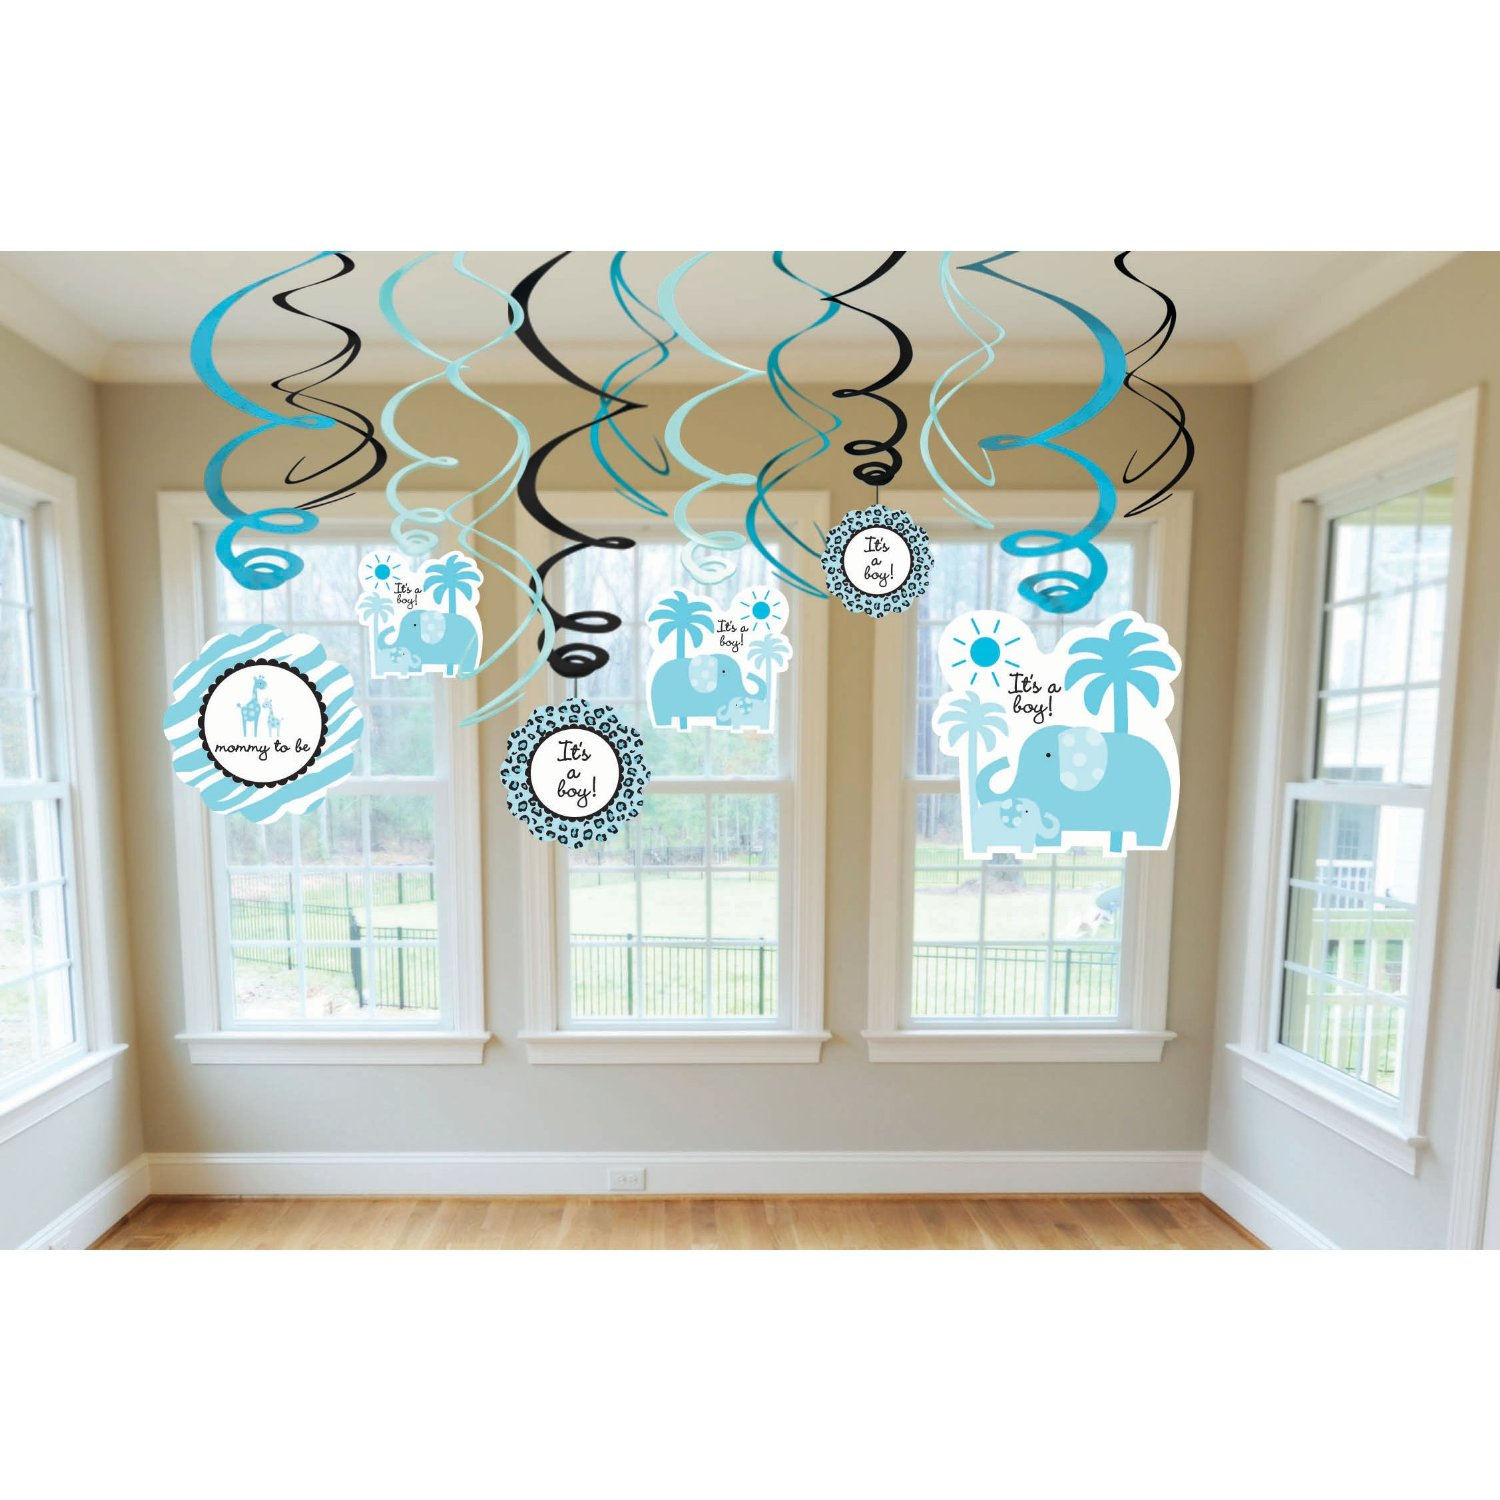 Indian baby shower decoration ideas and checklist sweet safari boy baby shower hanging swirls amipublicfo Gallery